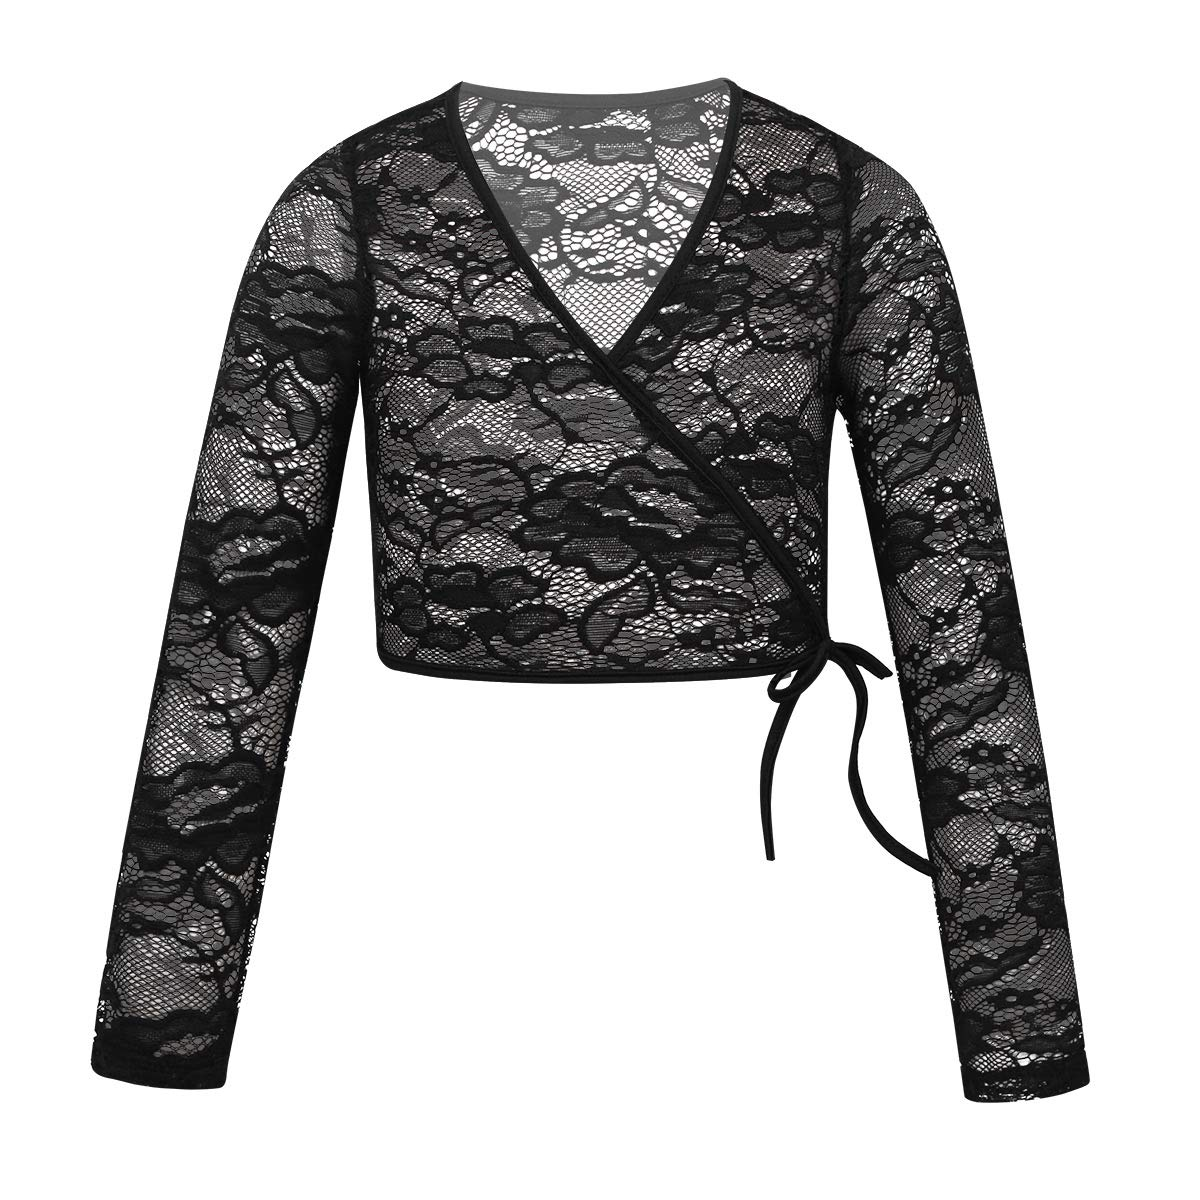 iEFiEL Girls Front Twist Knot Long Sleeve Ballerina Dance Cotton Wrap Top Black Floral Lace 10-12 by iEFiEL